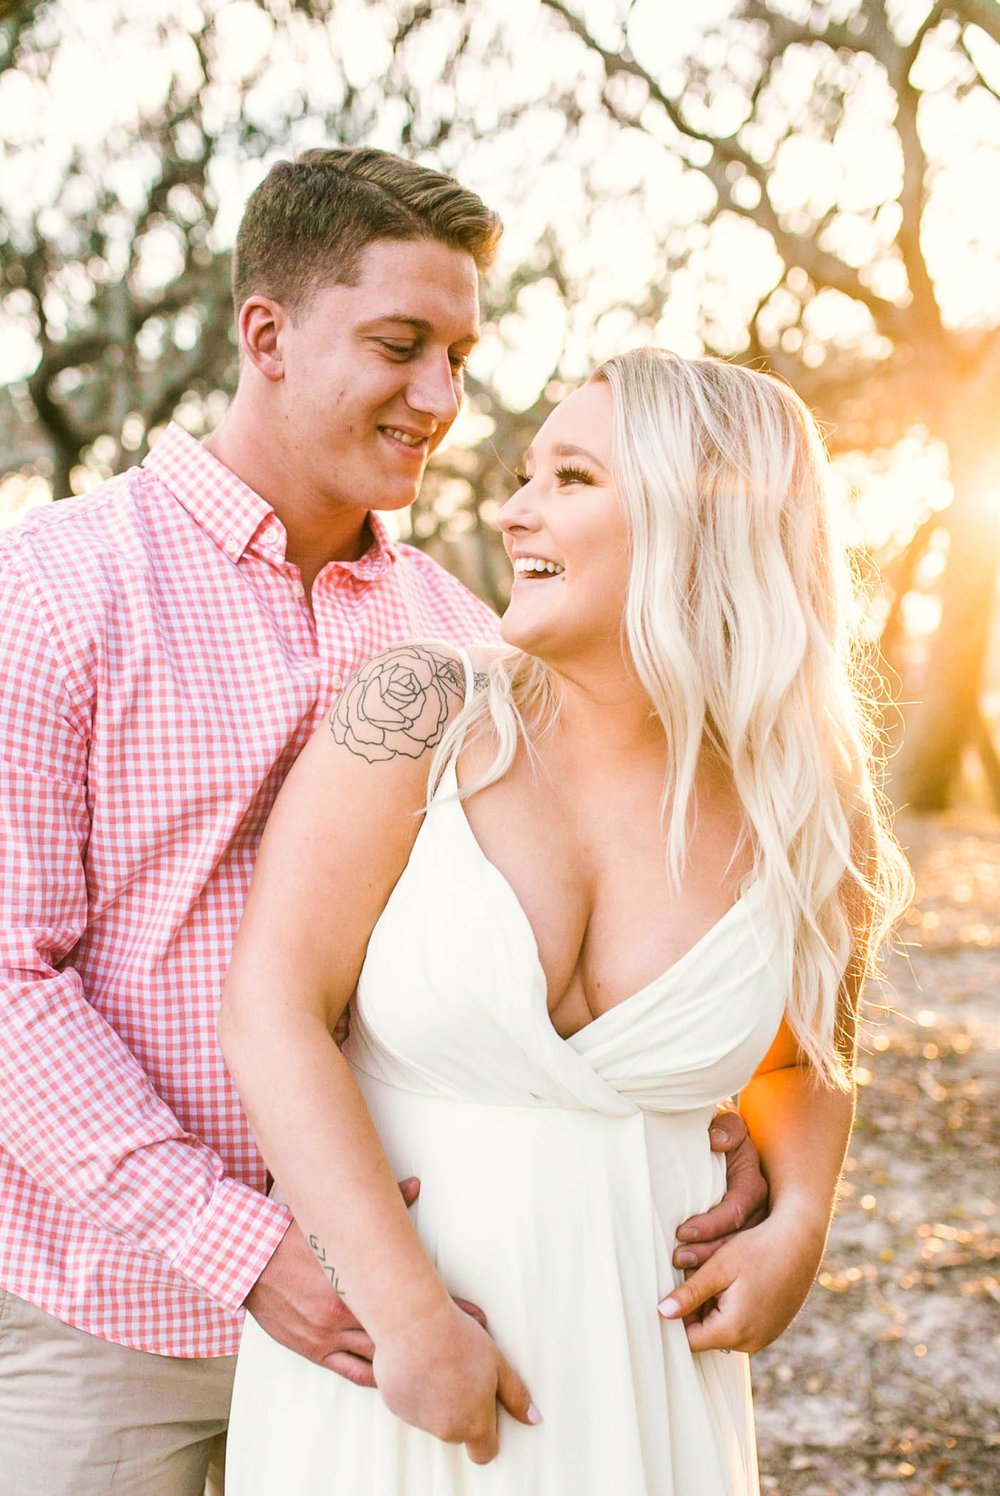 Engagement Photography Session beneath tropical trees at sunset during golden hour light - couple is laughing at each other - girl is wearing a white flowy maxi dress from lulus - Honolulu Oahu Hawaii Wedding Photographer - Johanna Dye